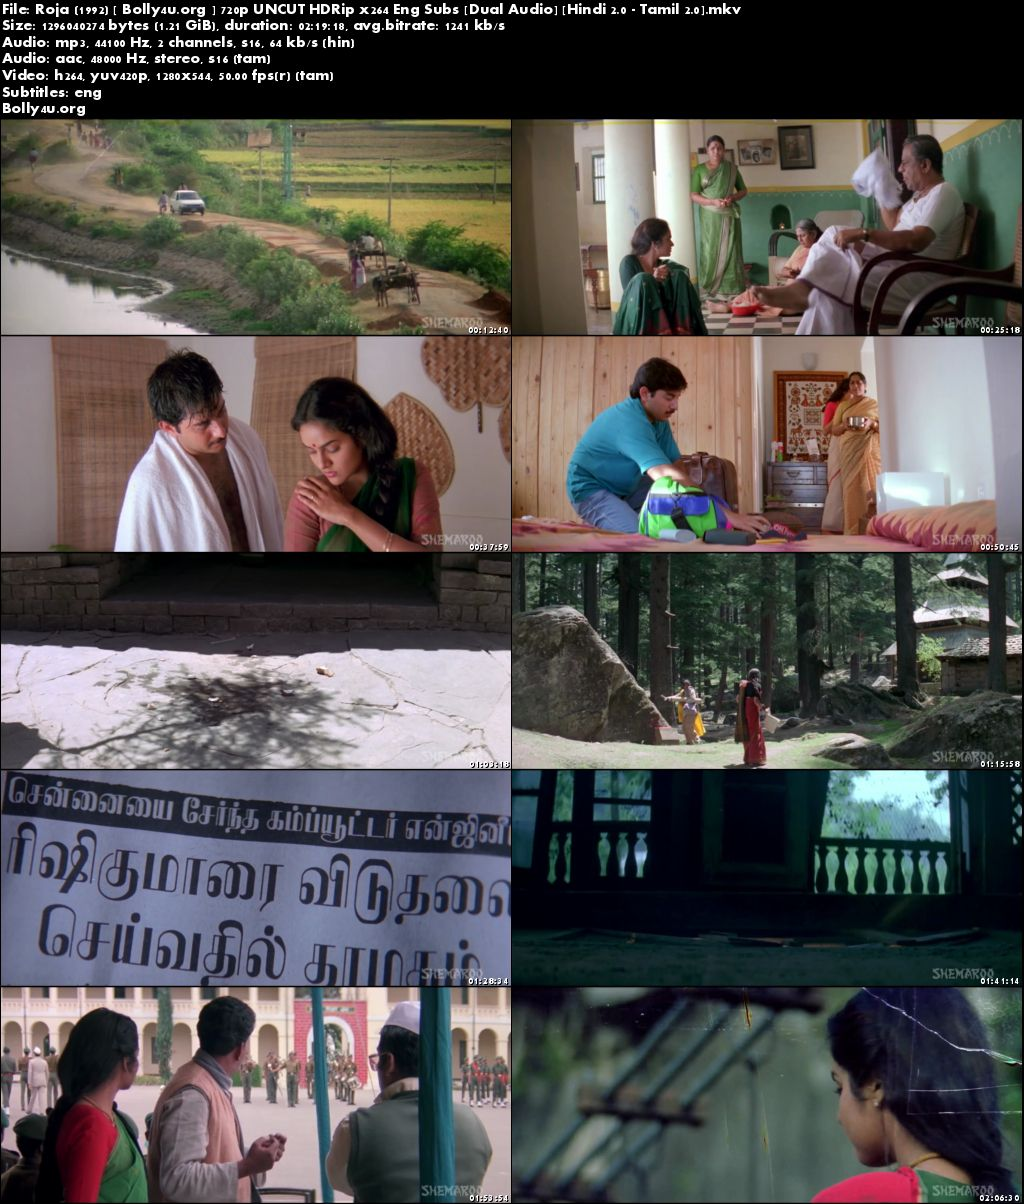 Roja 1992 HDRip 450MB UNCUT Hindi Dubbed Dual Audio 480p Download